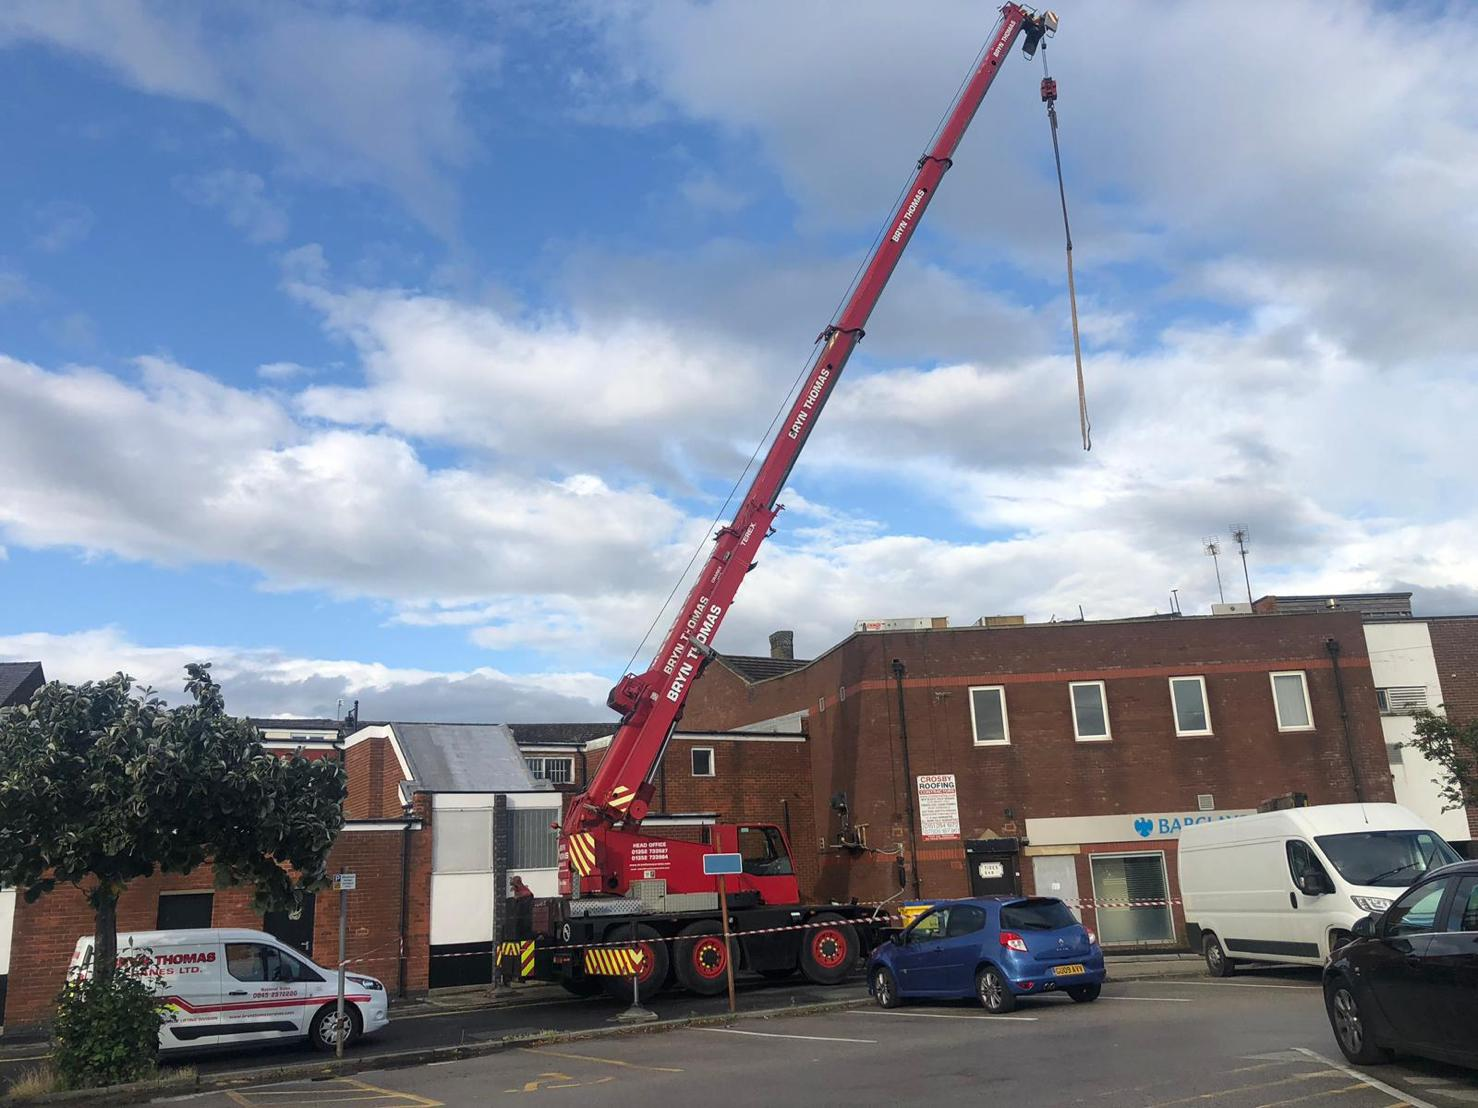 Crane Hire in North West